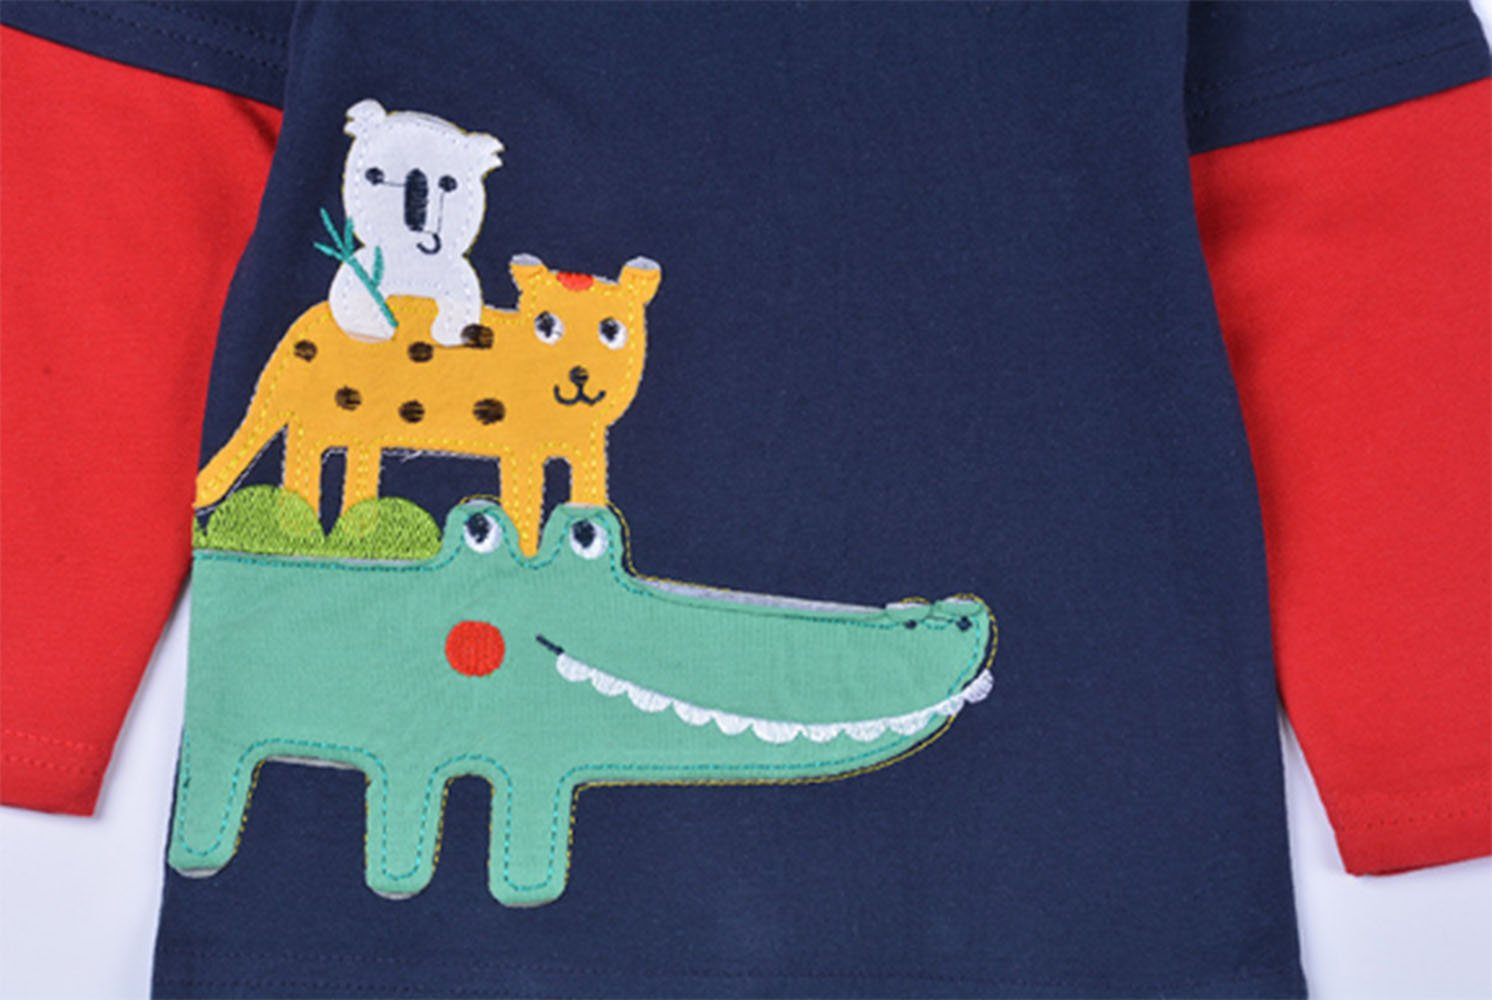 Crocodile Little Boys' Pajamas 100% Cotton Long Sleeve Clothes Toddler Kids T-Shirt by LOVE ROSE (Image #3)